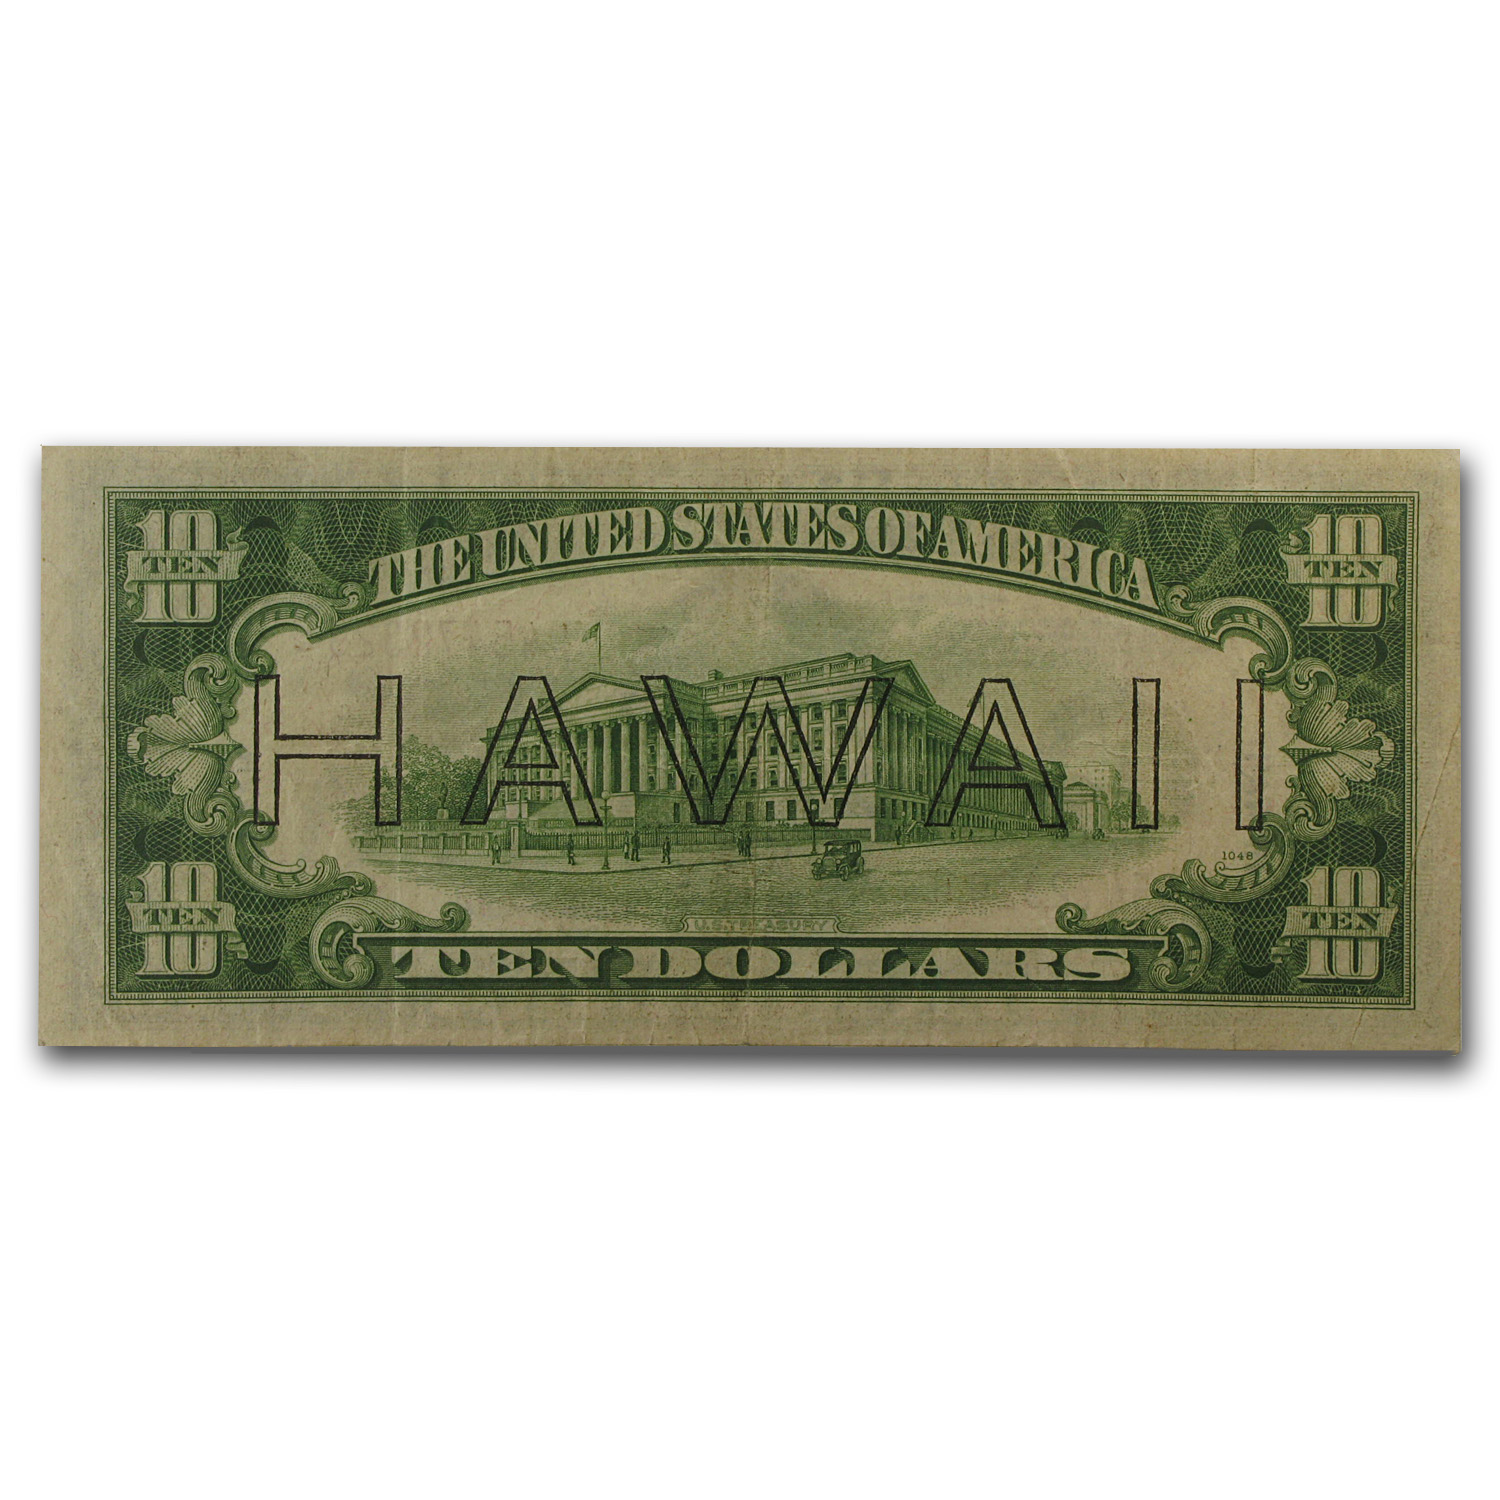 1934-A $10 FRN - Brown Seal (HAWAII) (Very Fine)